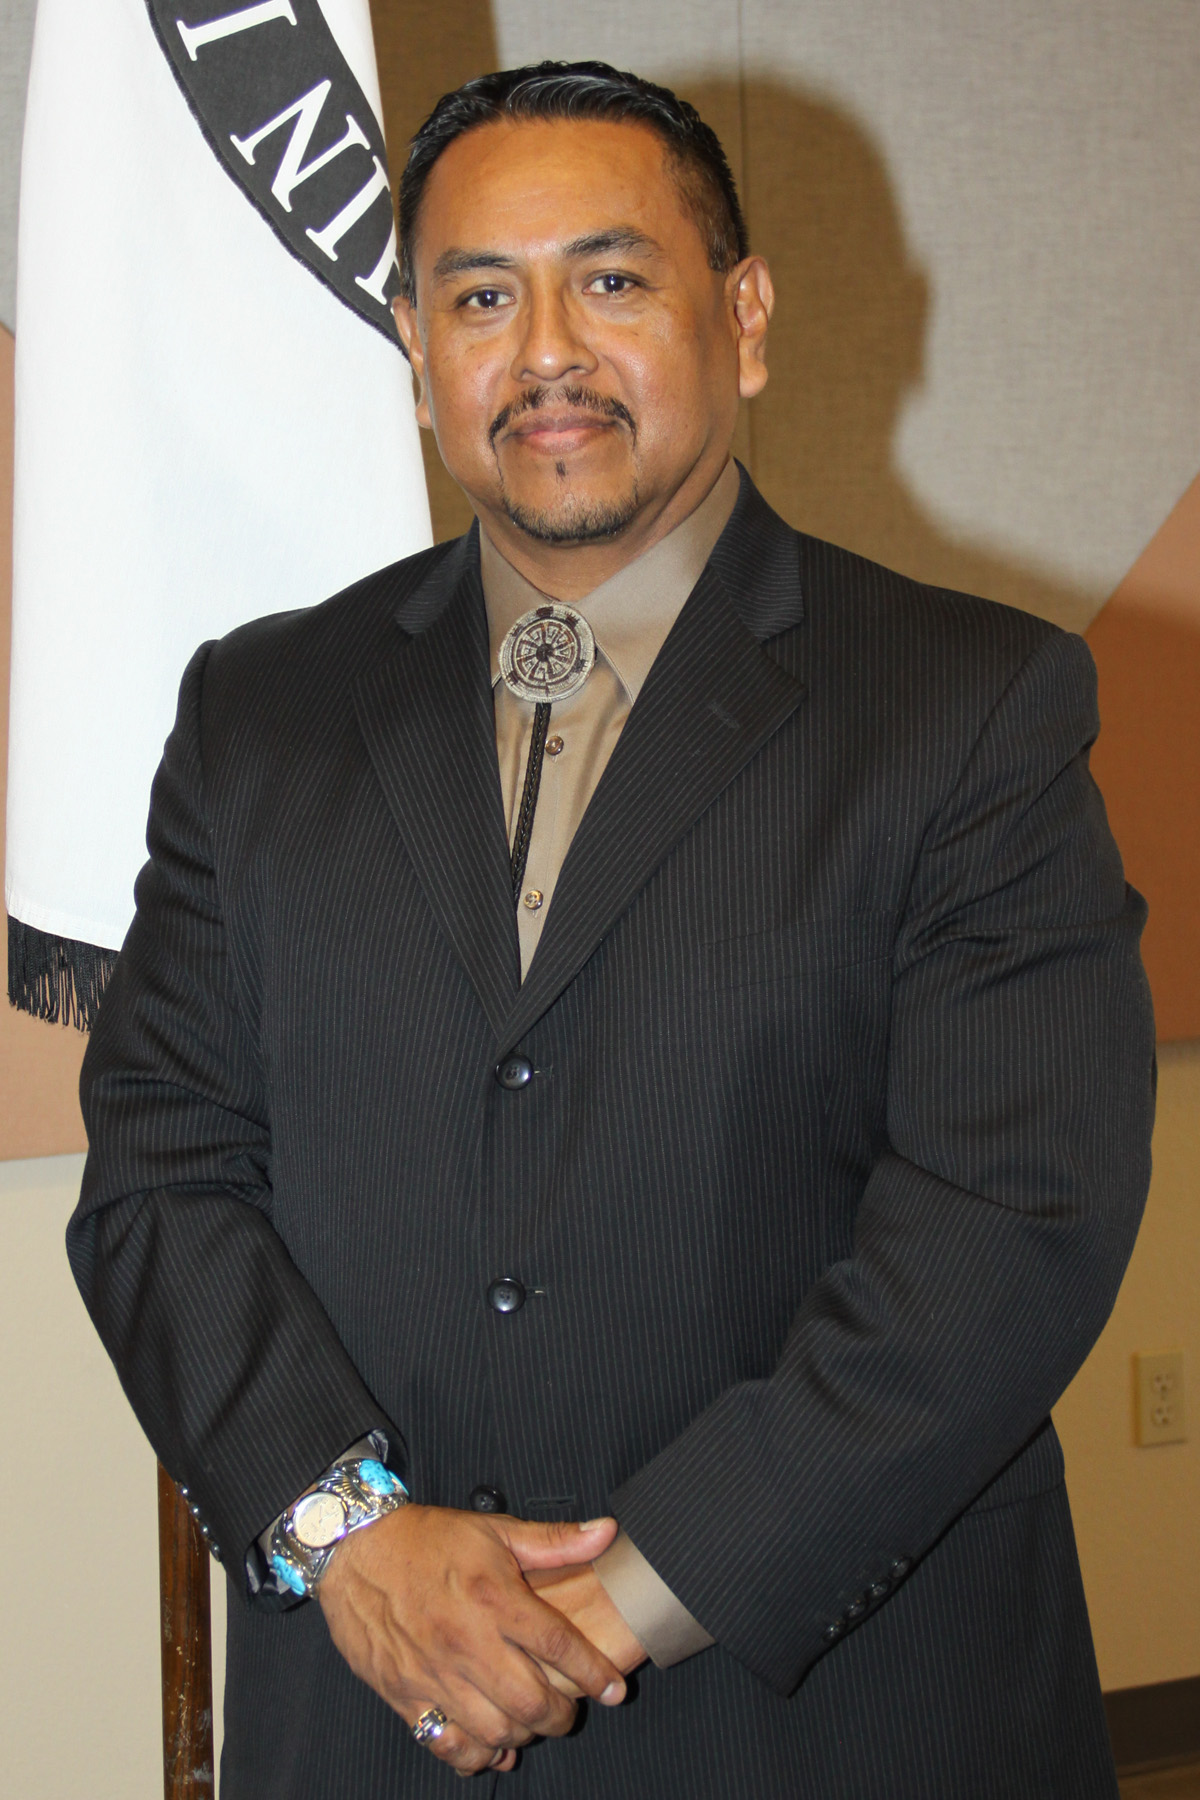 Ak-Chin Tribal Chairman Louis J. Manuel, Jr., who was also the honorary chairman of the event.